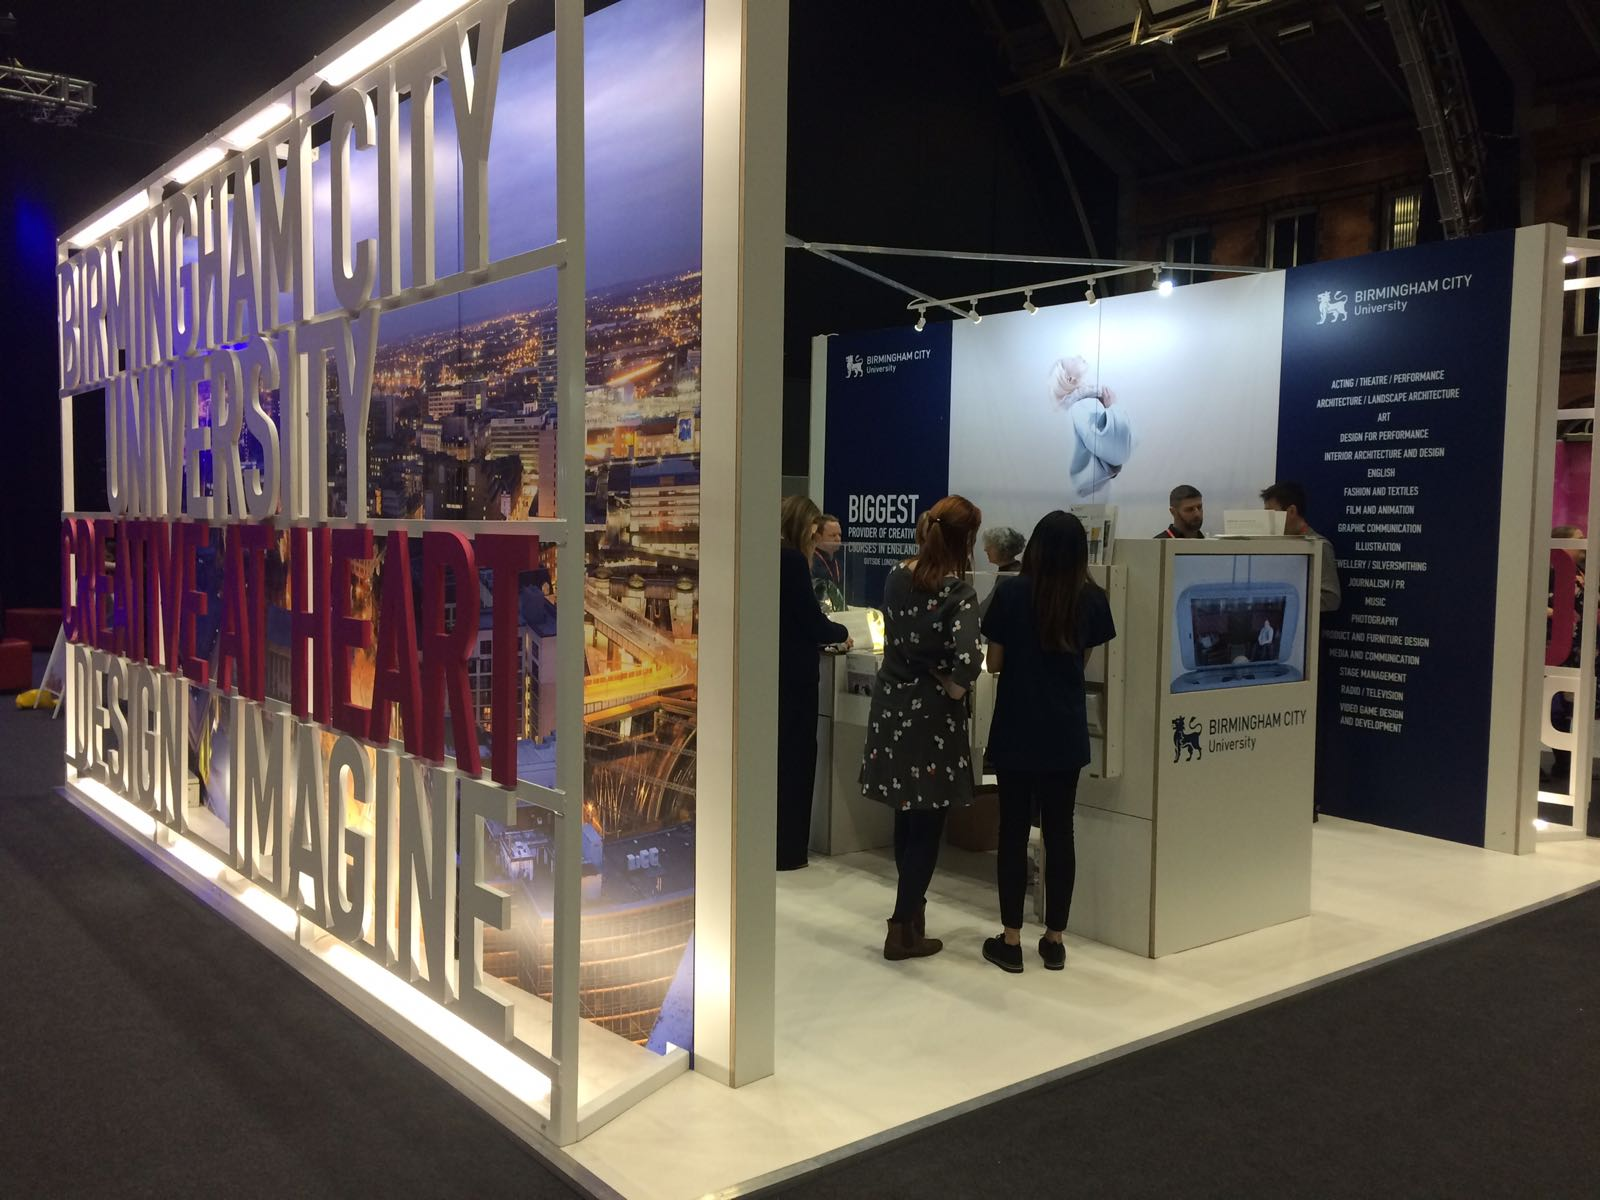 Exhibition Stand Wallpaper : Plane structure birmingham city university: exhibition stand